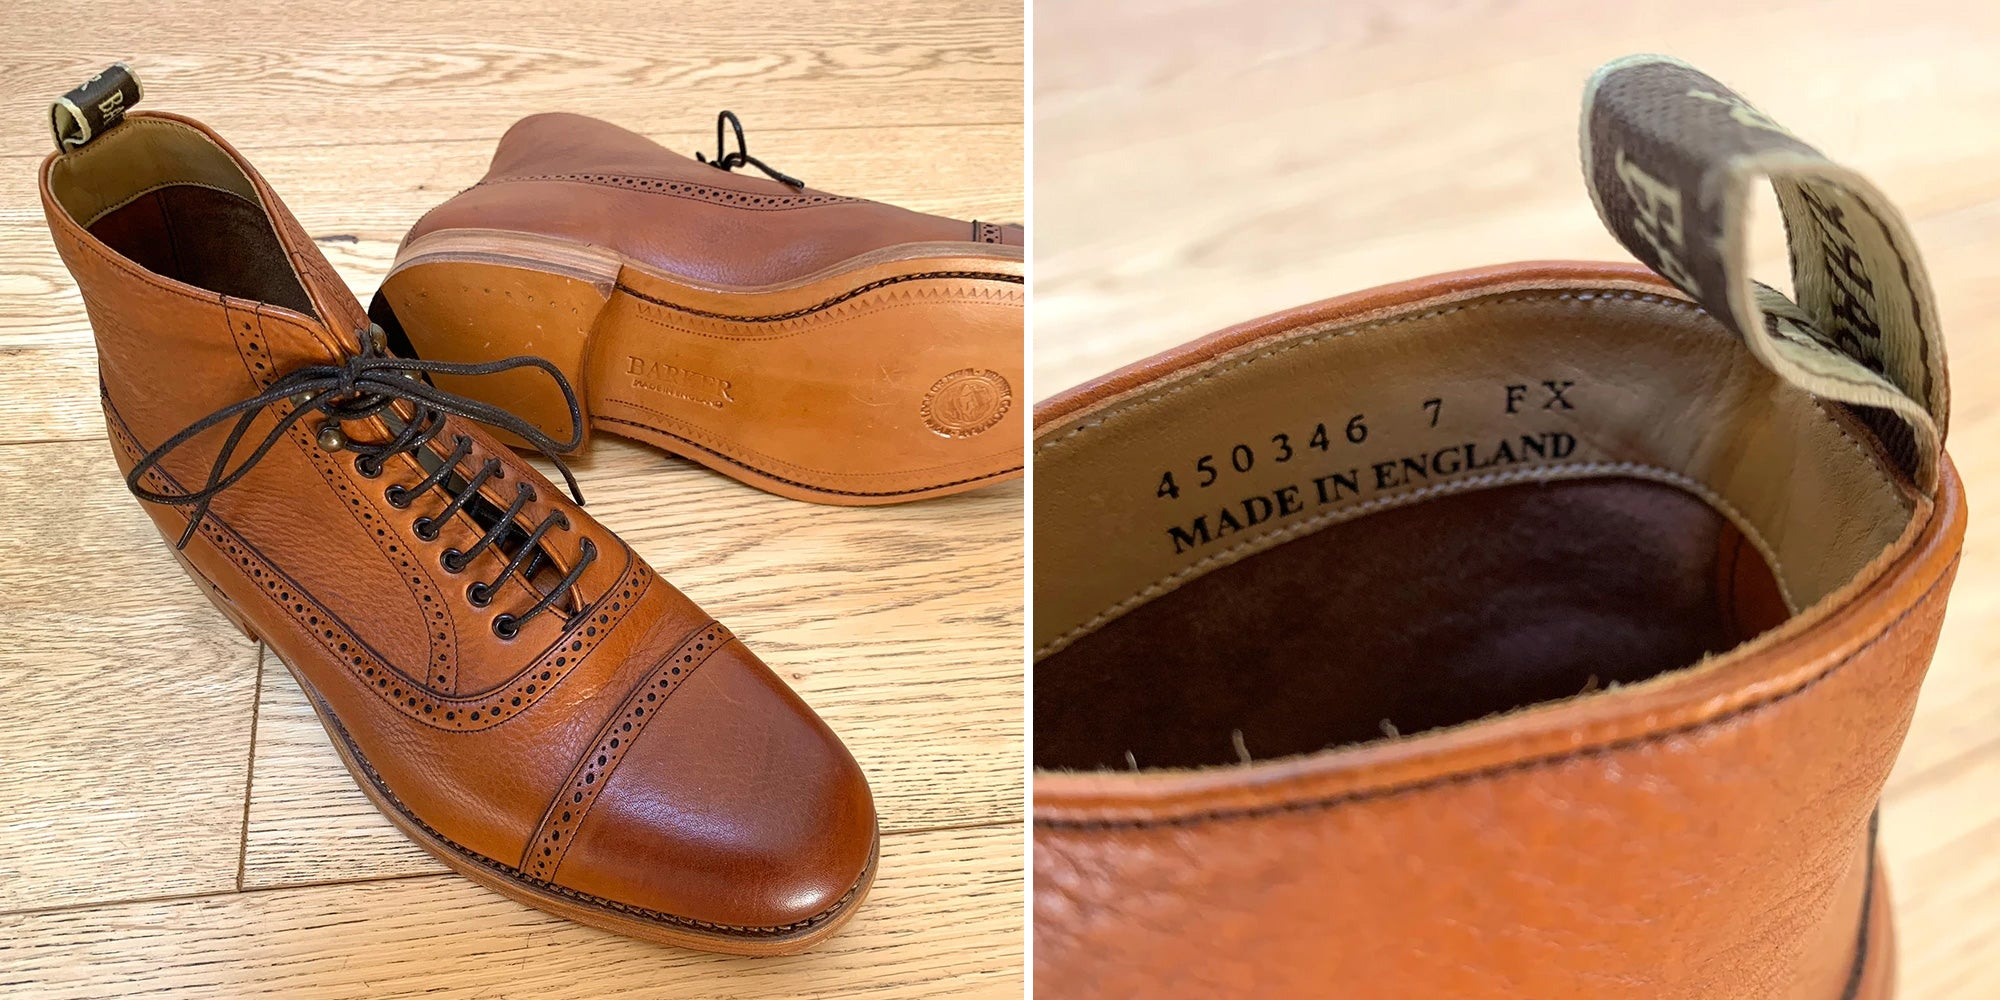 Barker Foley Toe-Cap Boot - Made in England